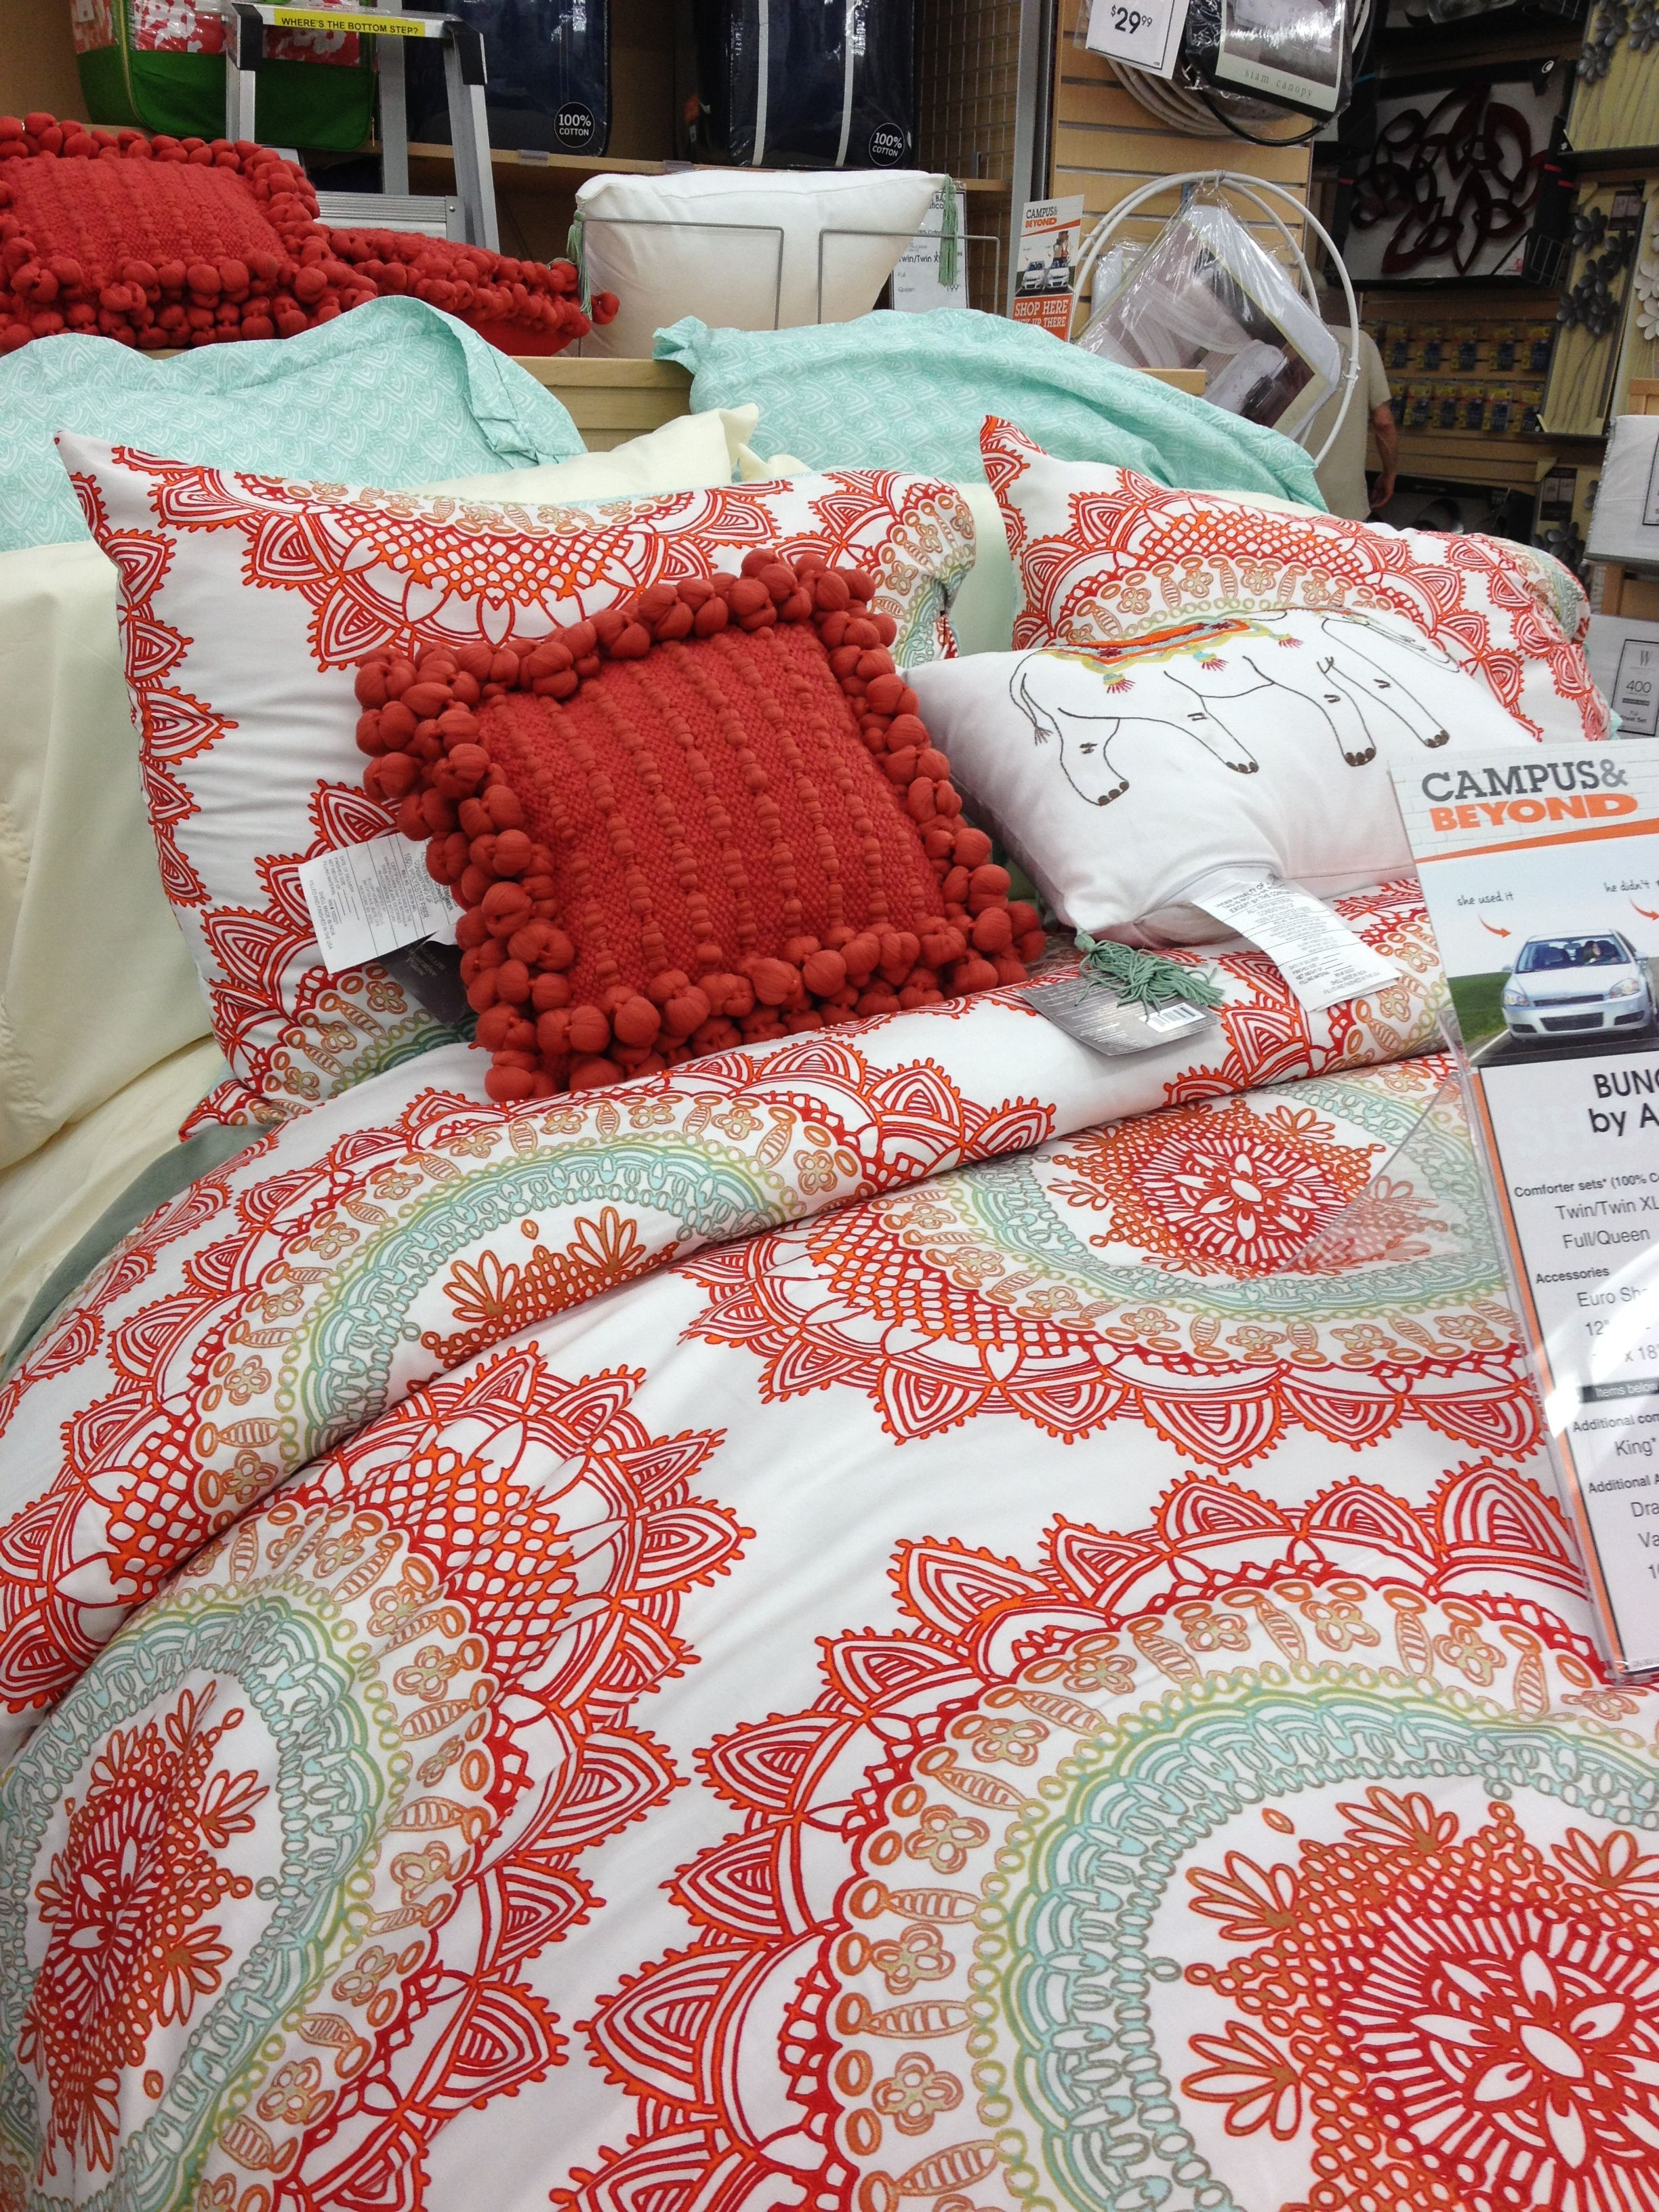 Incredible College Bedding At Bed Bath And Beyond Dorm Bedding Sets Short Links Chair Design For Home Short Linksinfo